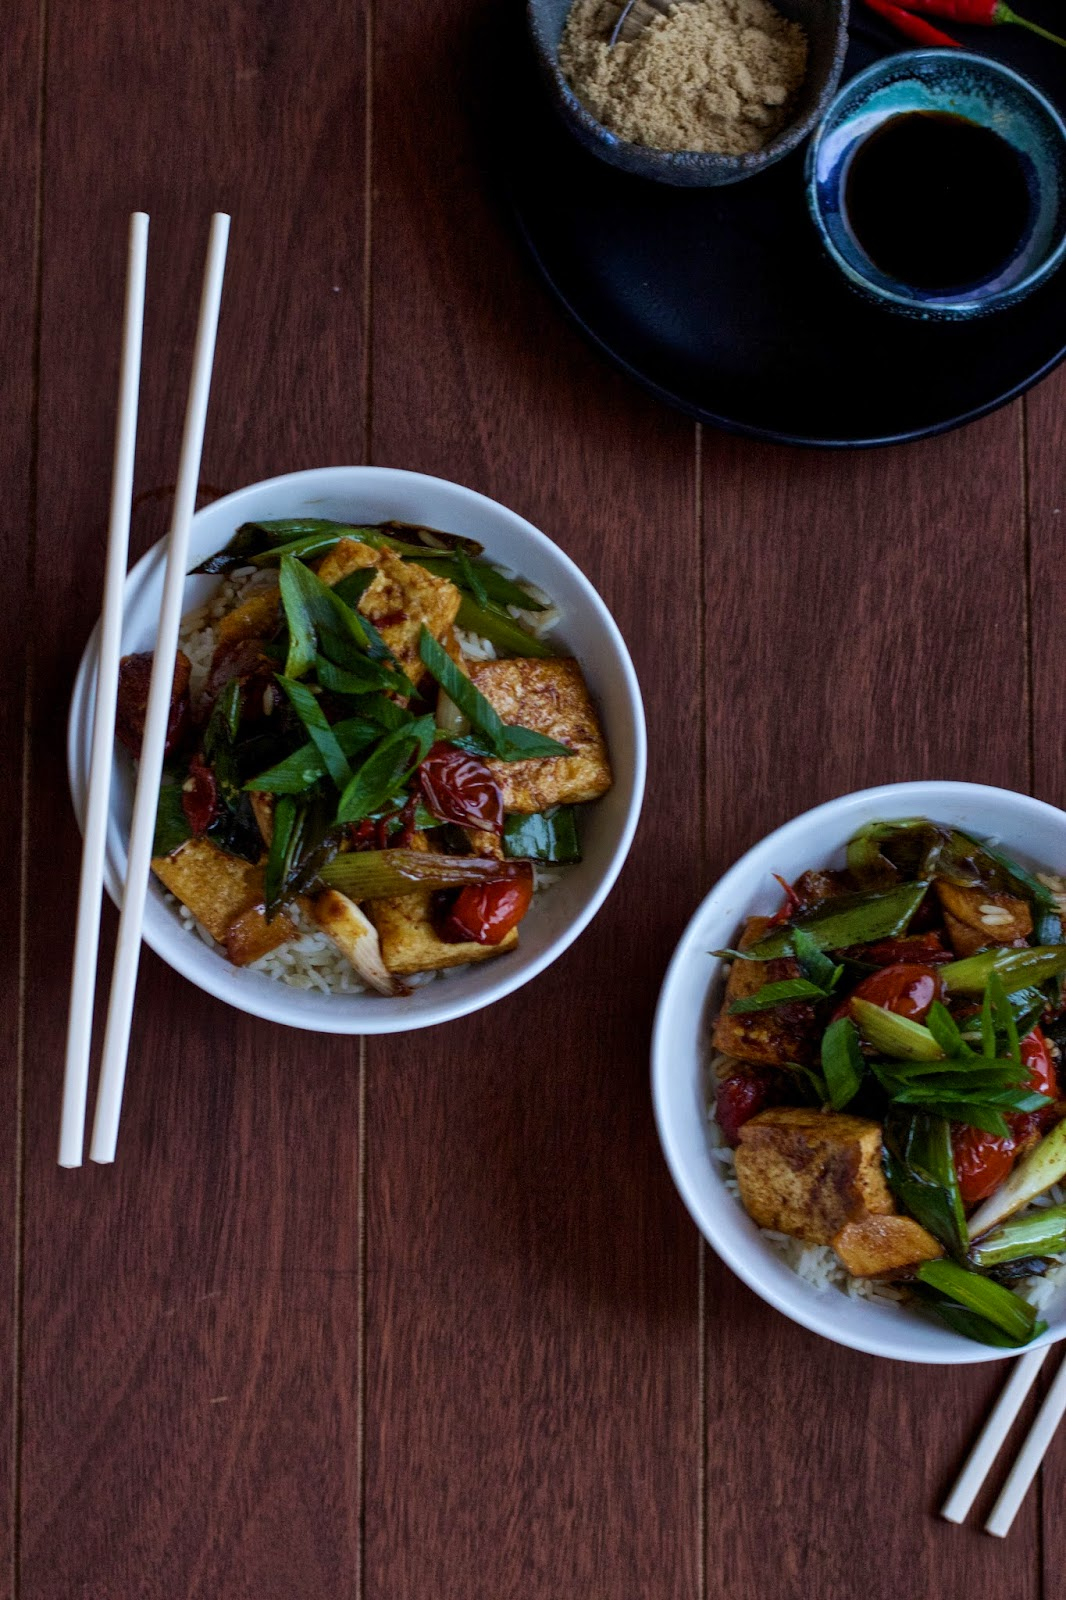 Kylie Kwong's Braised Tofu with Tomatoes